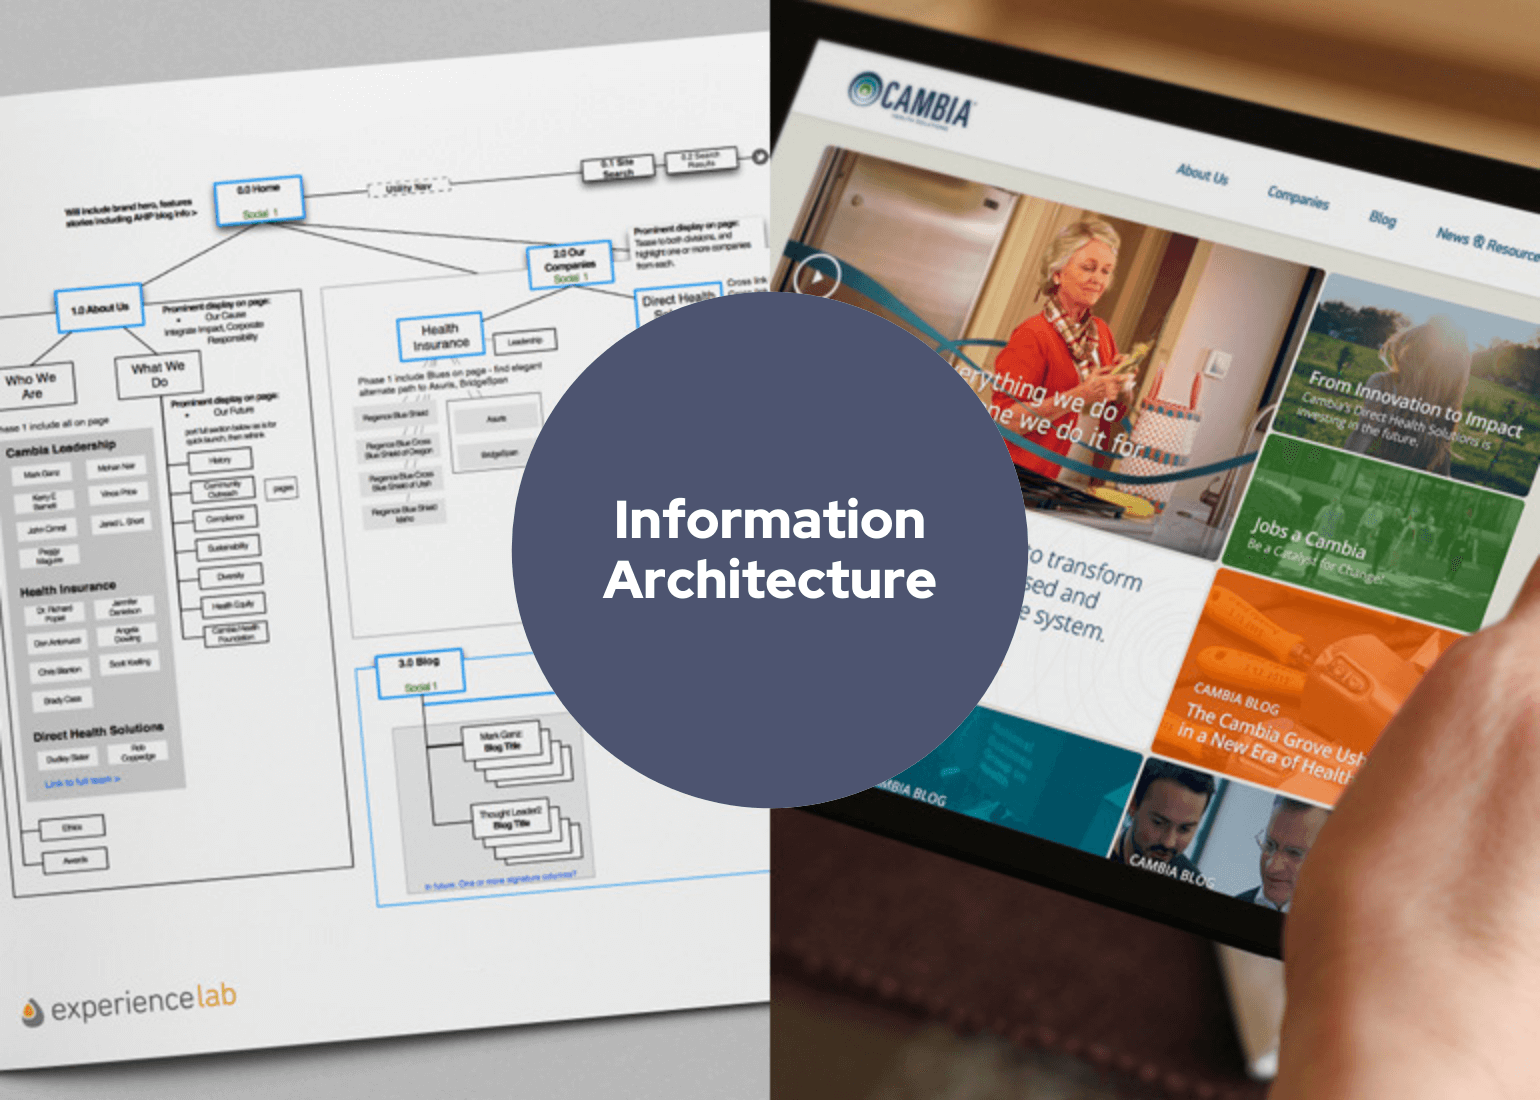 Information Architecture. Sitemap. Tablet with view of Cambia website..